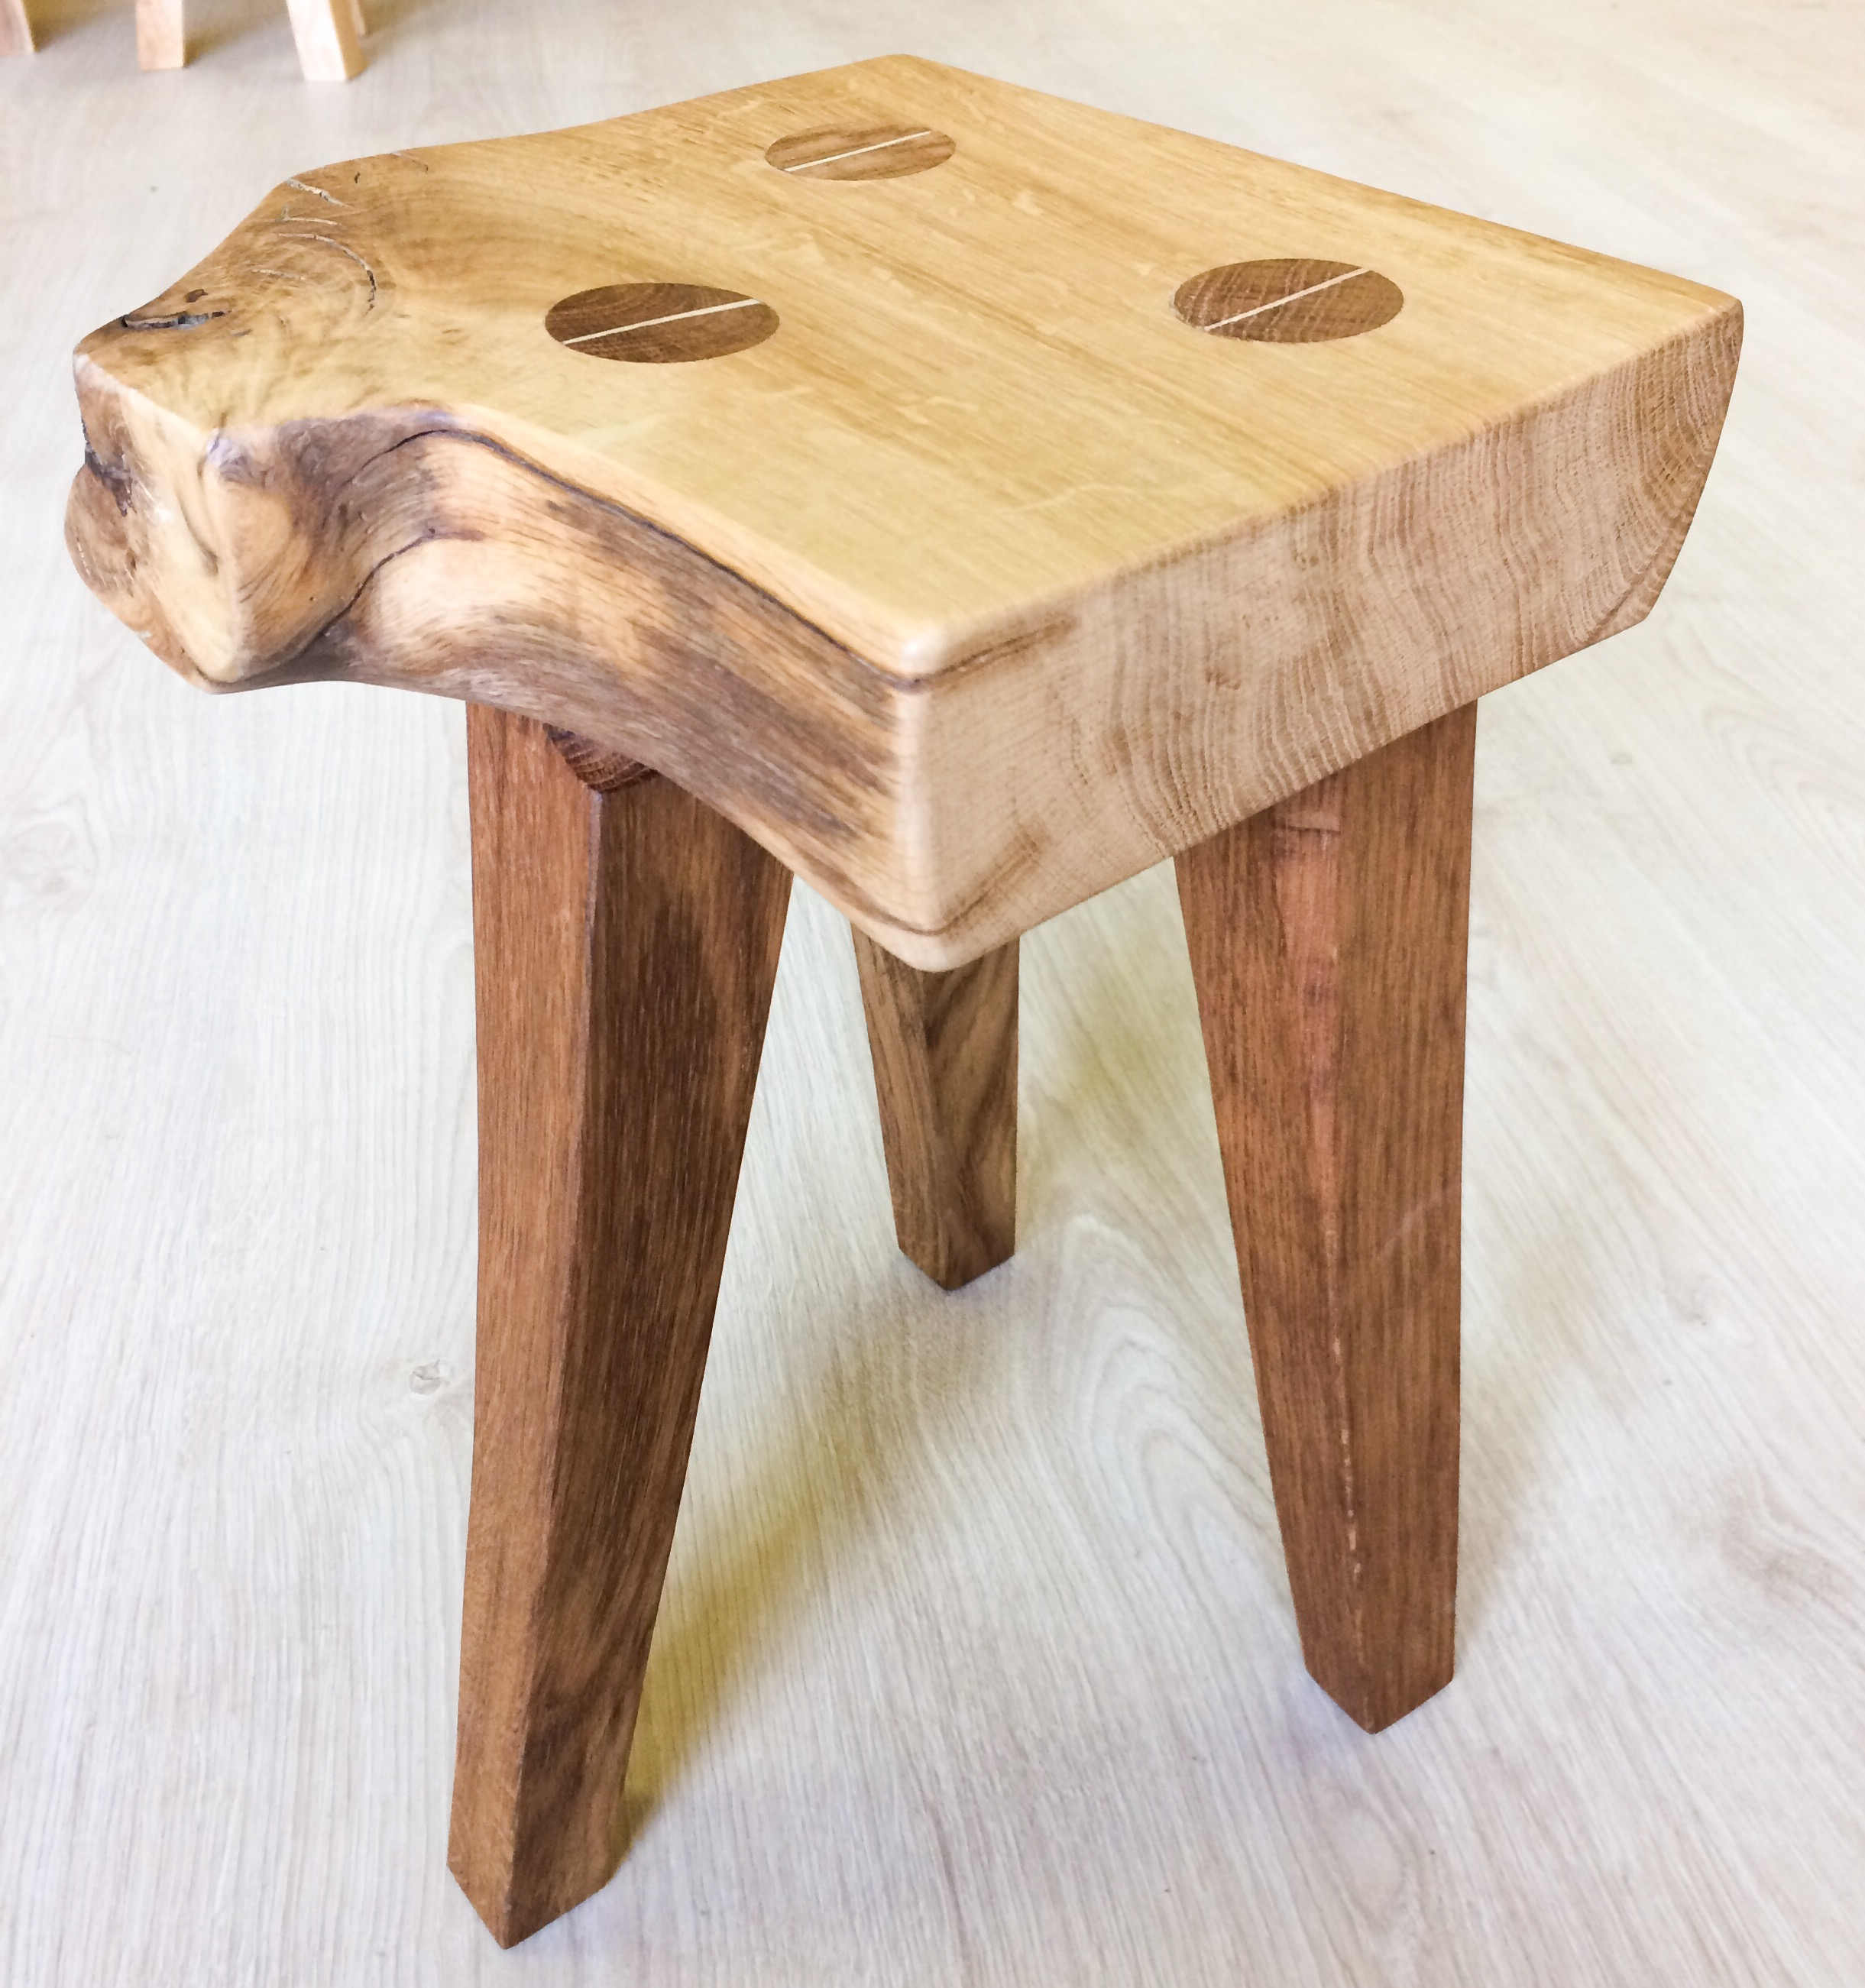 Oak tapered leg stool